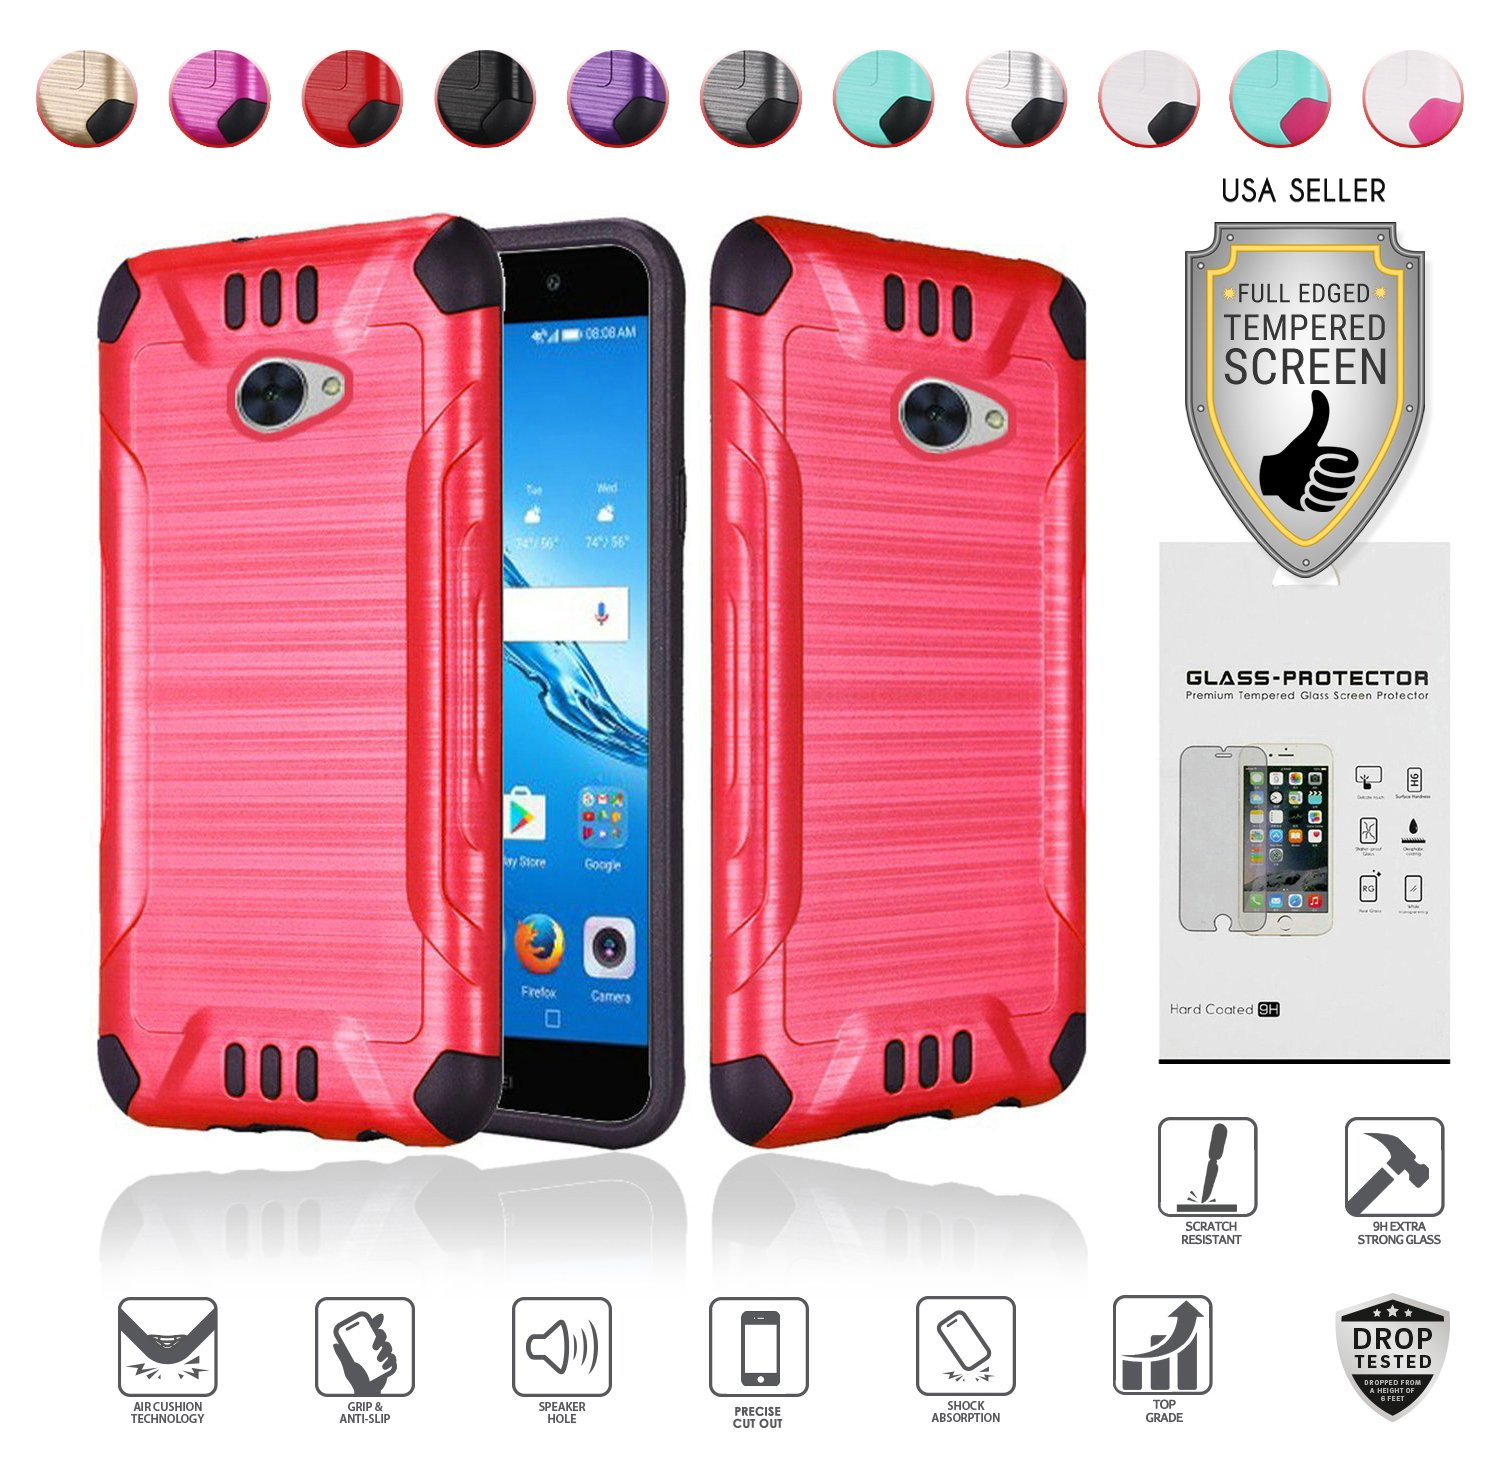 for Huawei Ascend XT2 Case with Full Glass Screen Protector (2nd Version  Only), Elate 4G Case, H1711 Case, Metallic Brushed Design Slim Hybrid